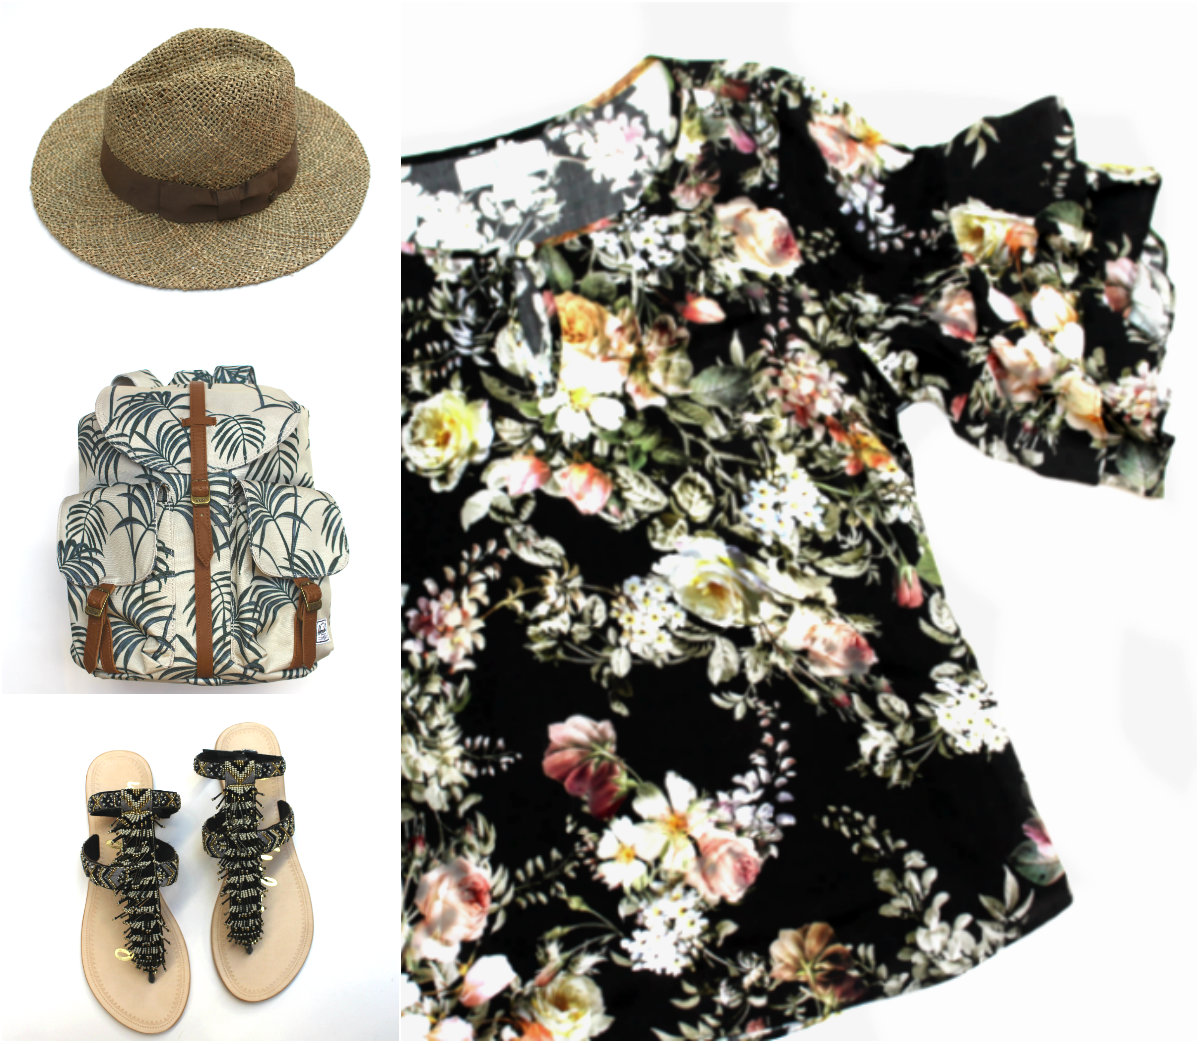 Brixton Straw Hat $55 Herschel Backpack $70 Sam Edelman Fringe Sandals $160 Velvet Floral Top $215